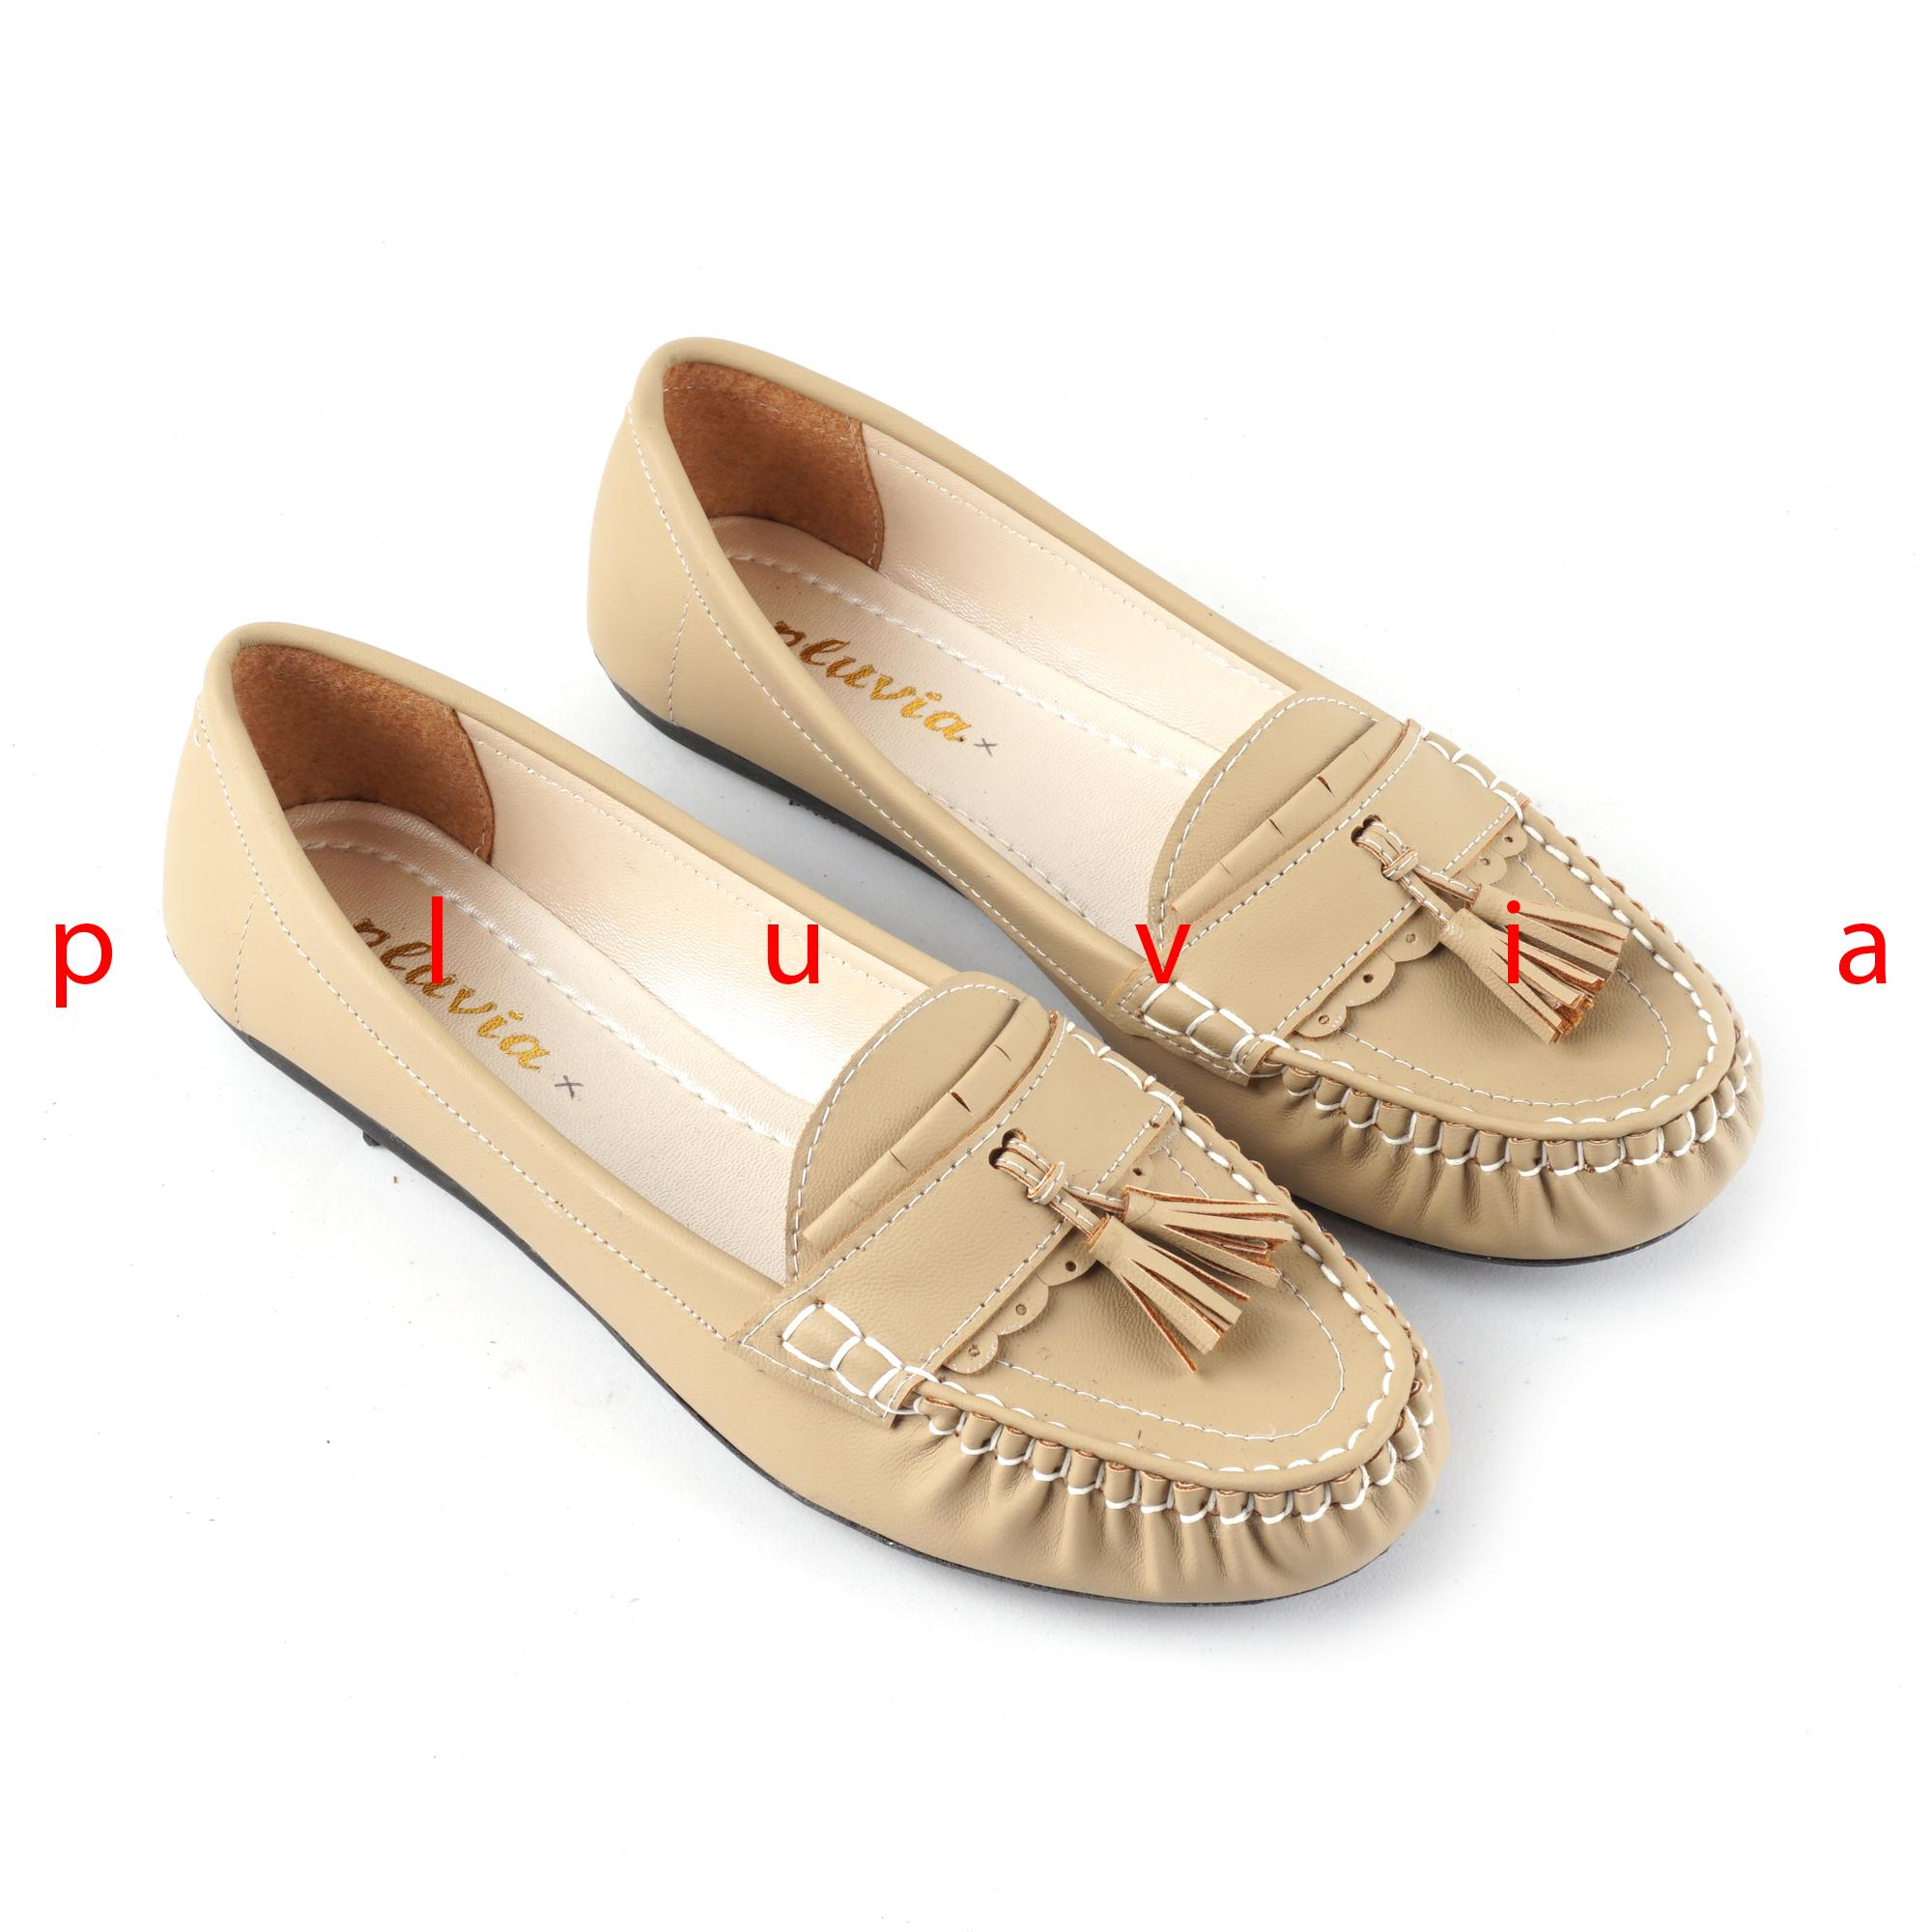 Pluvia - Sepatu Balet Flat Shoes Slip On Loafers Wanita PLV09 - Cream